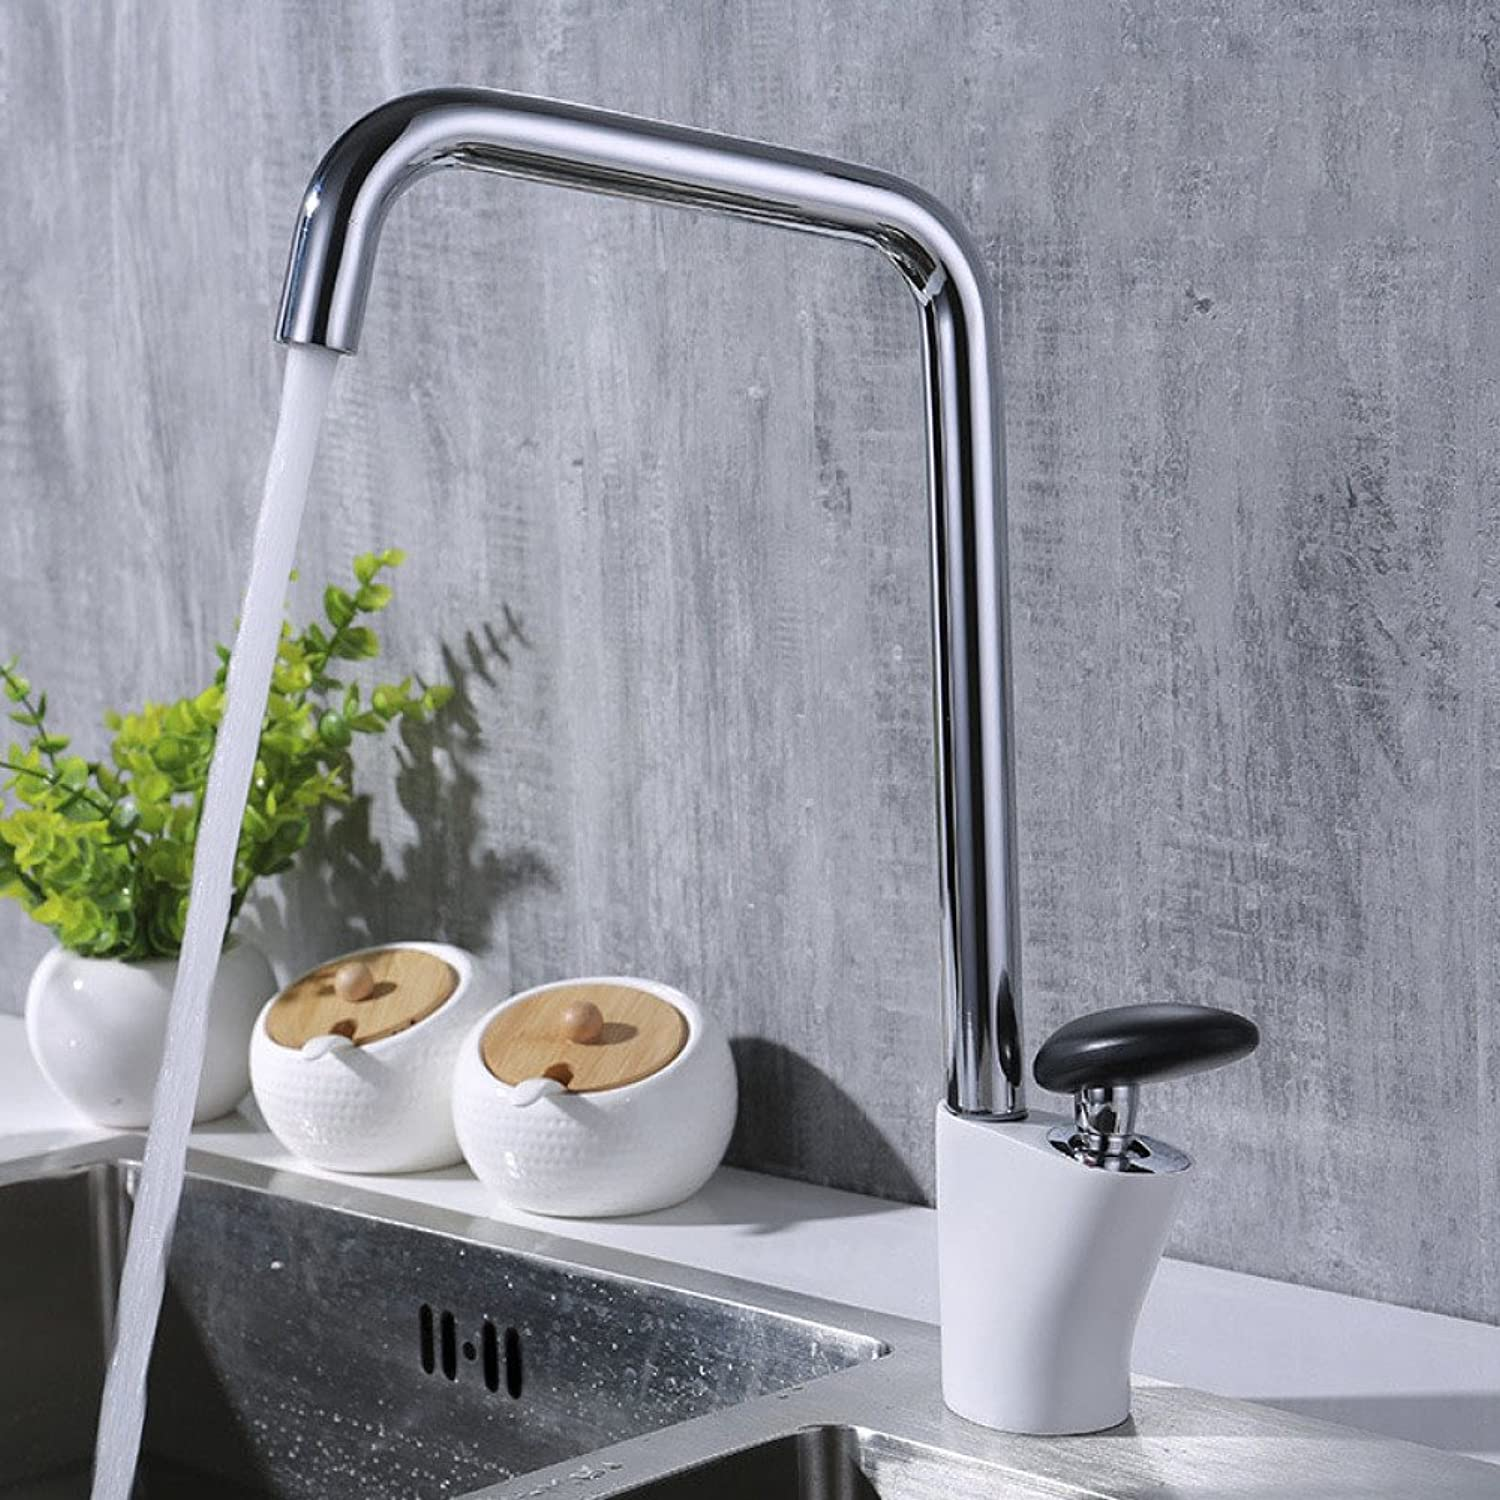 LPW Water tap chrome splash-proof turbulent hot and cold faucet horizontal 360-degree water flow semolina copper faucet